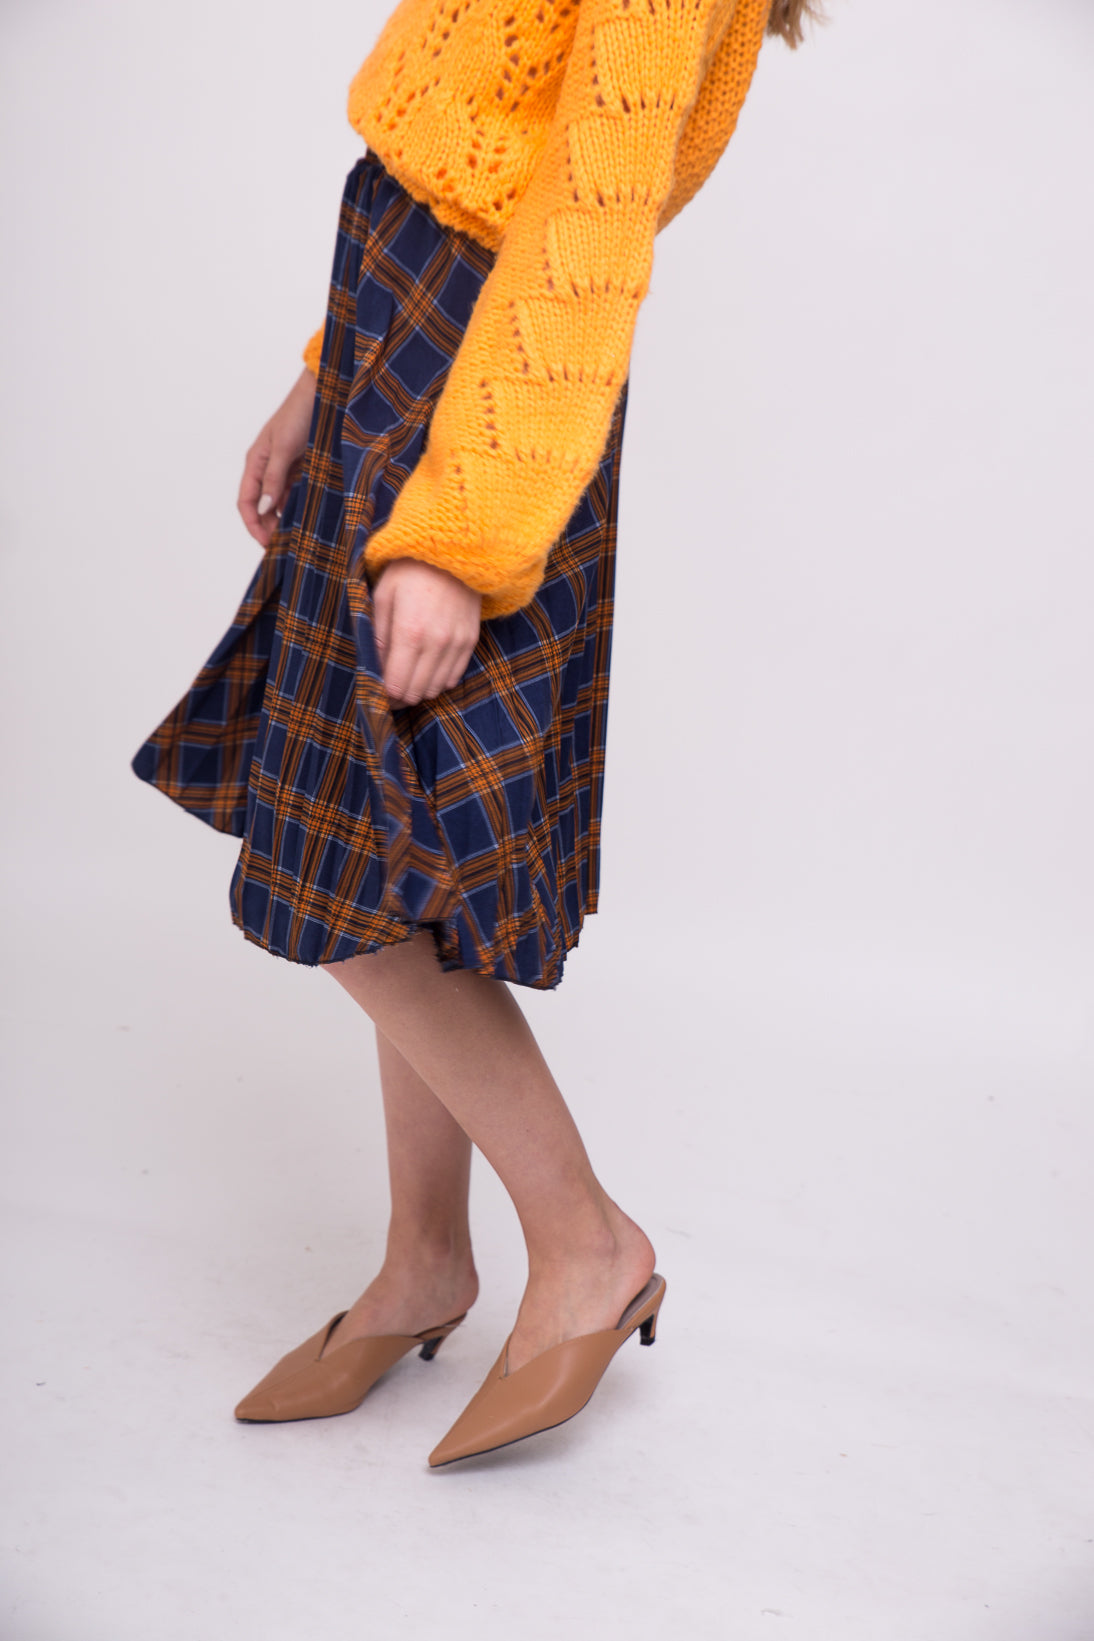 Plaid pleated bellow the knee skirt.